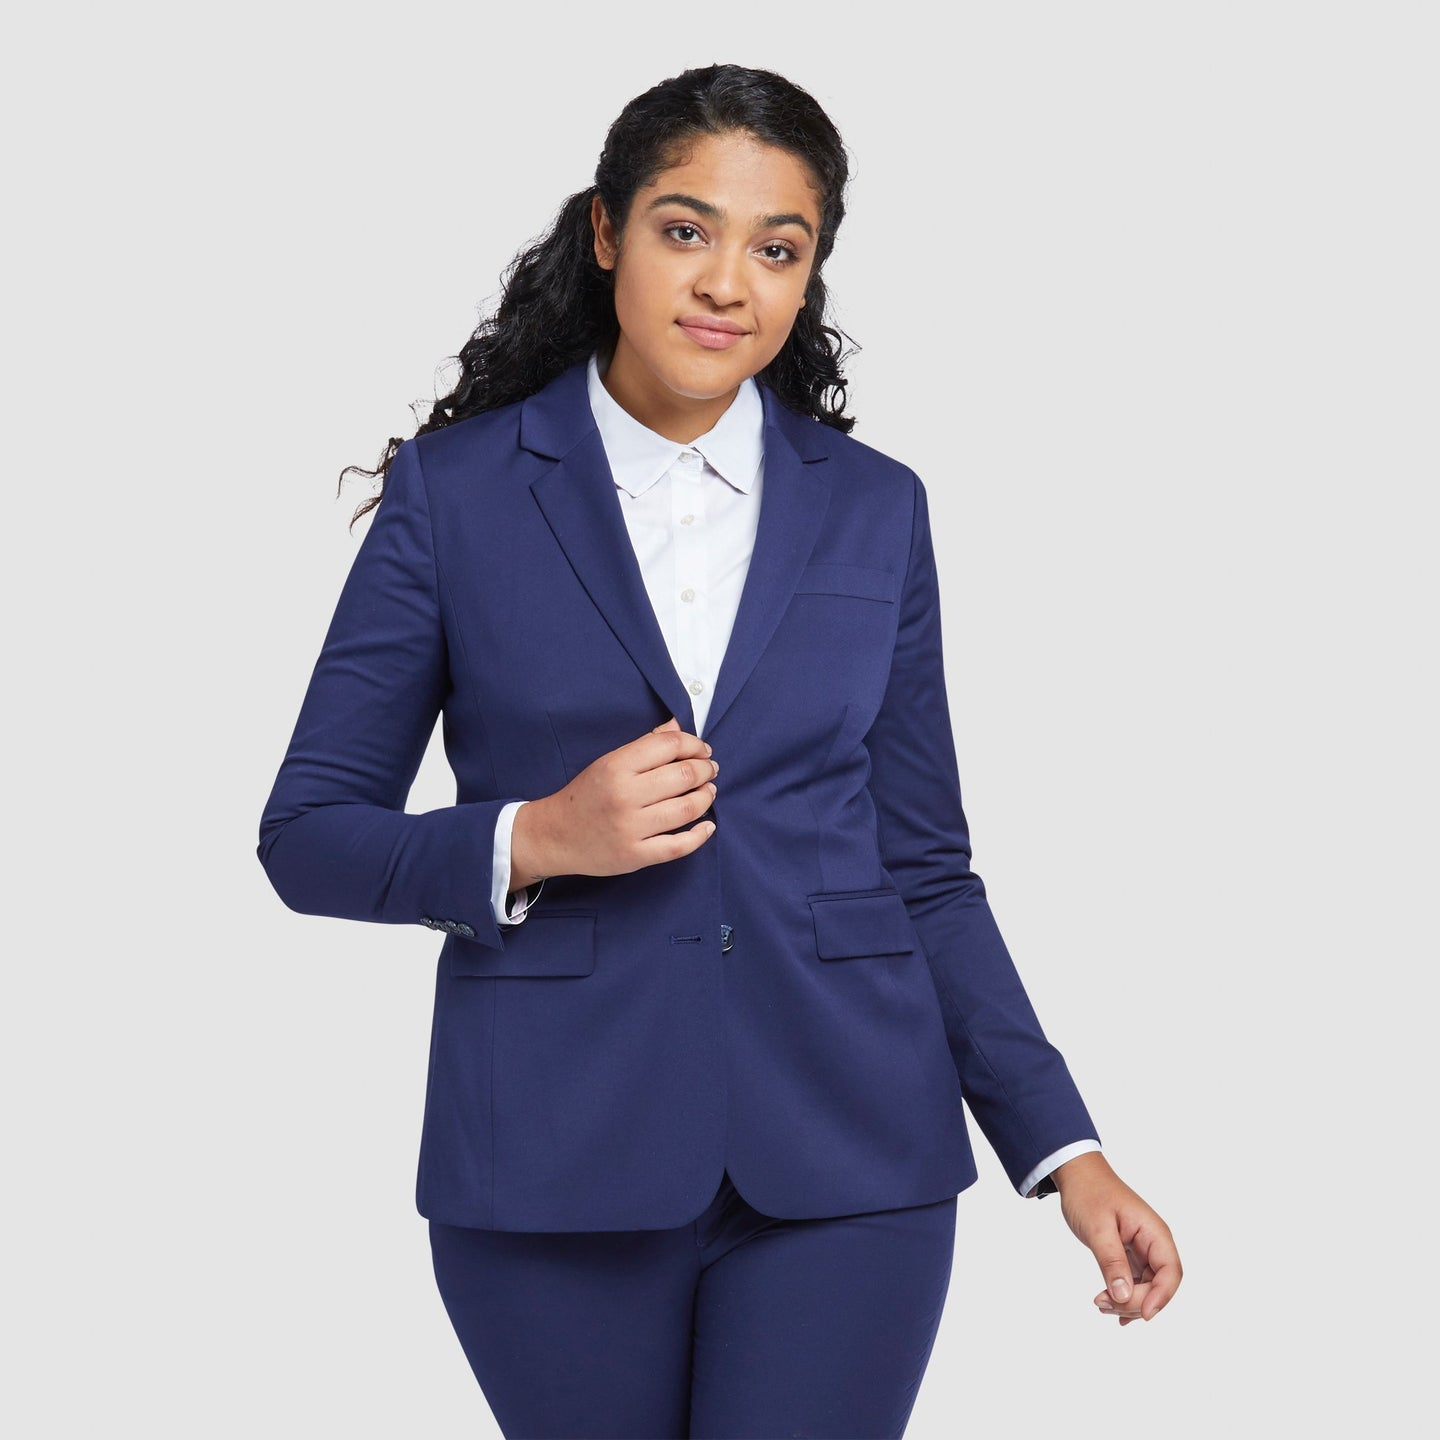 Women's Royal Blue Prom Suit Jacket